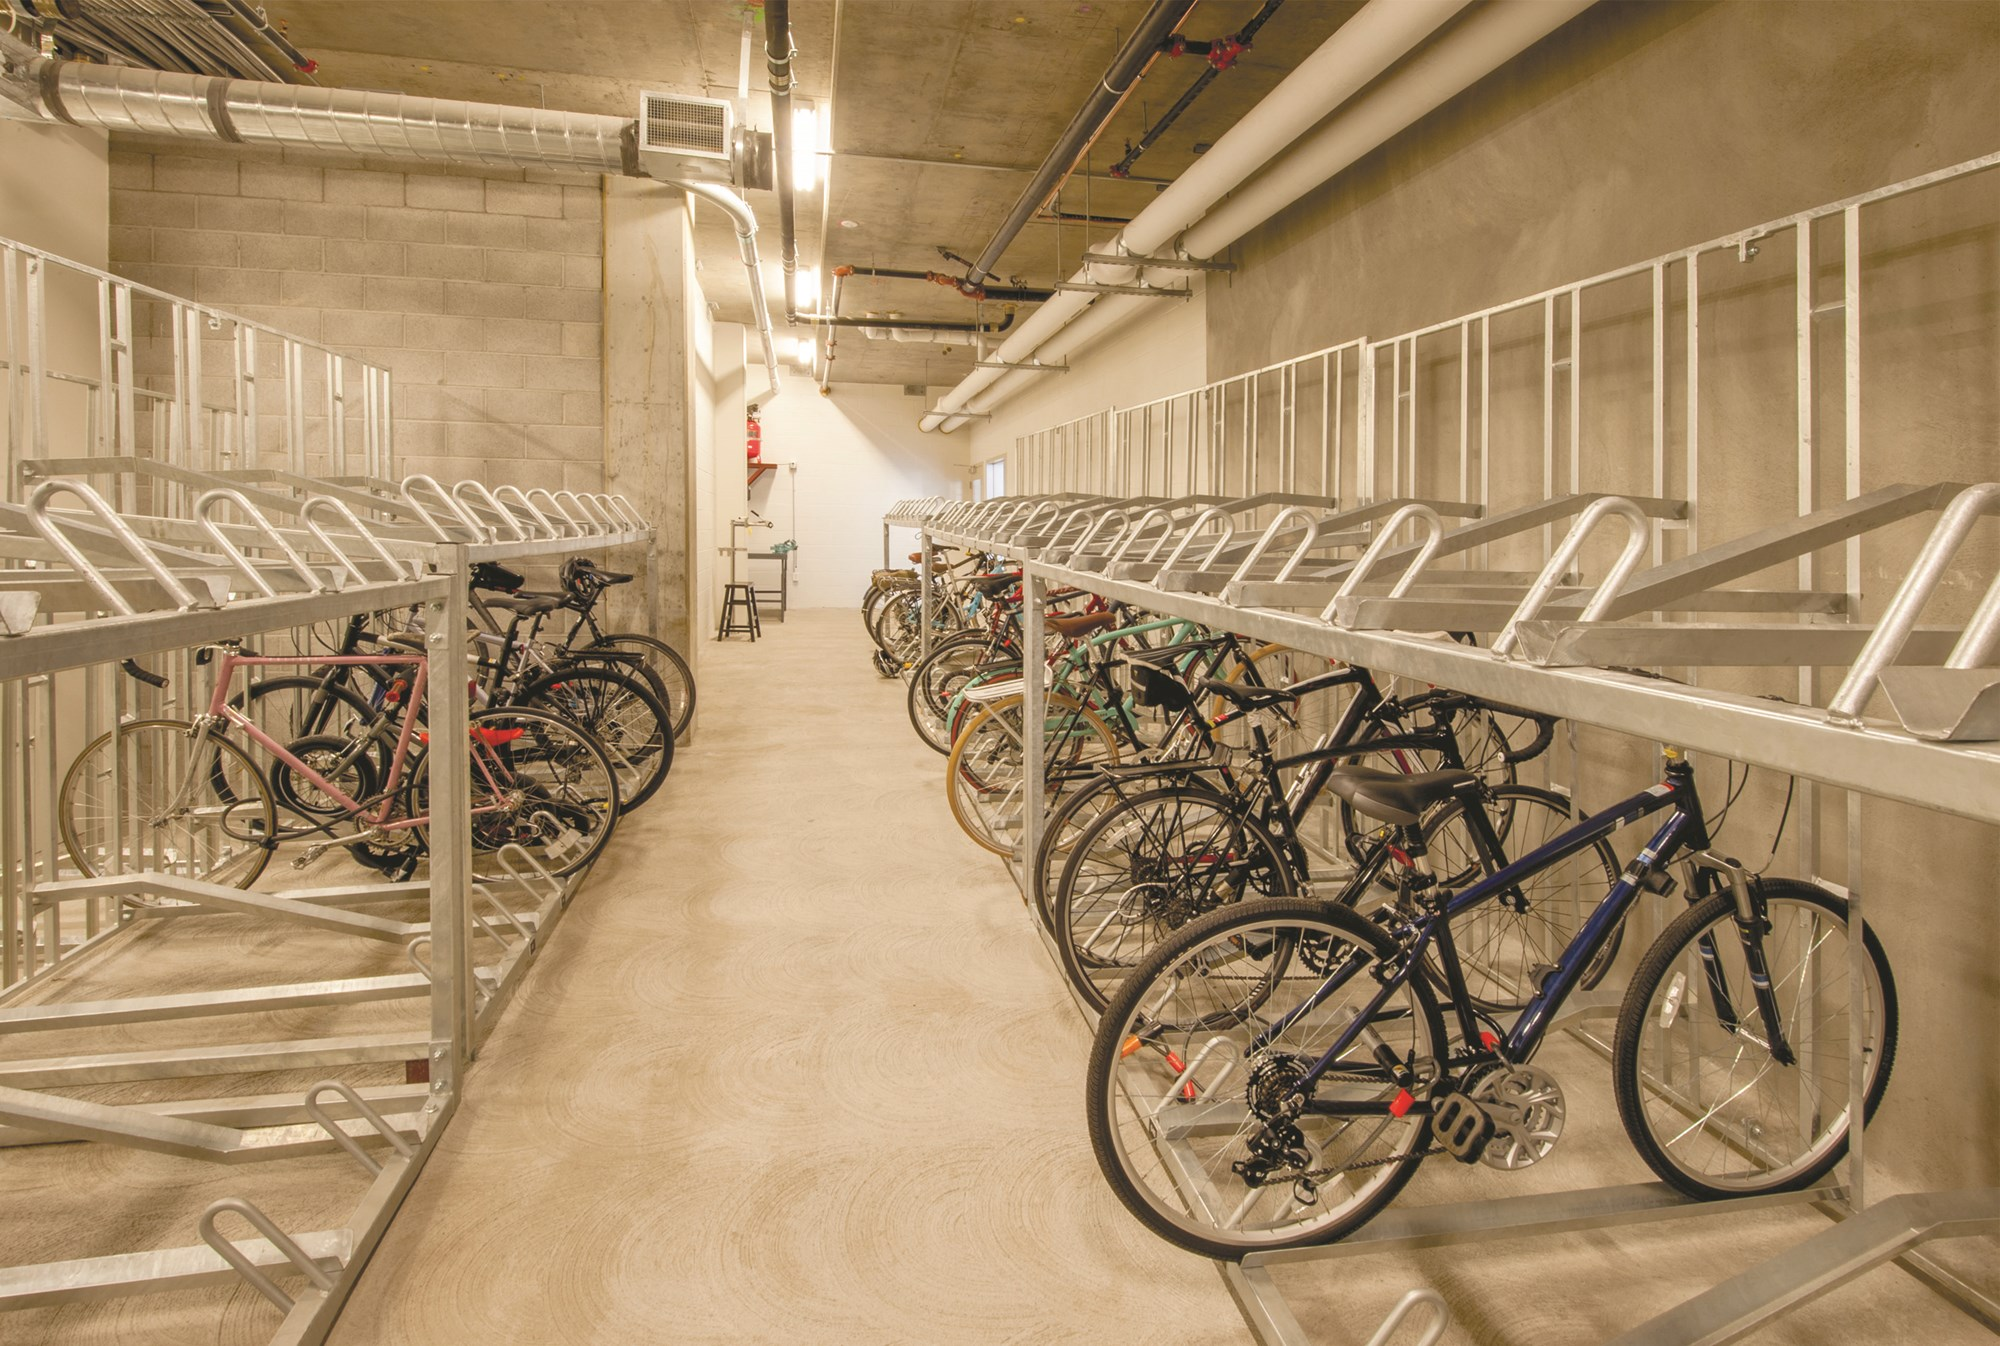 Attractive Bicycle Storage Basic Amenity, Or Luxury?